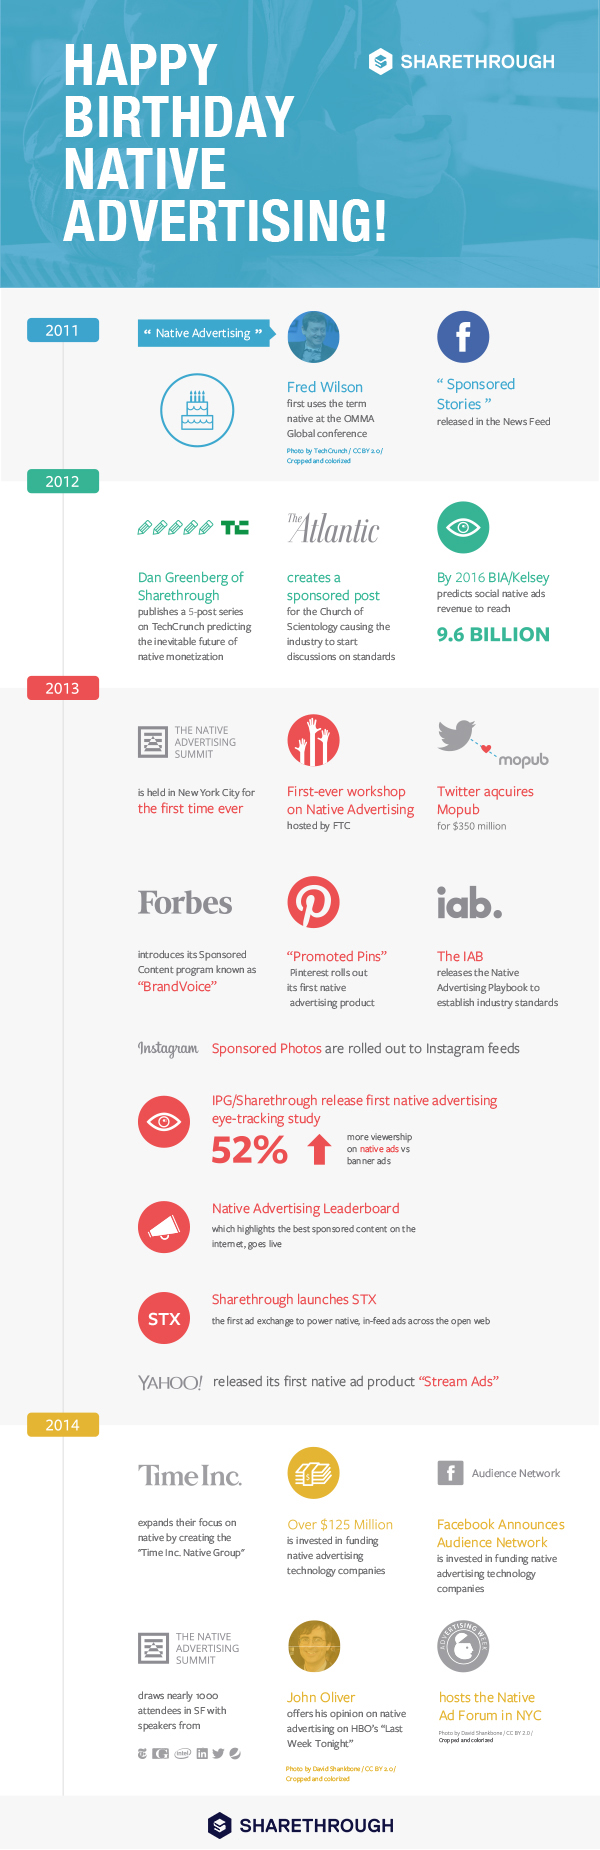 Infographic: The History Of Native Advertising